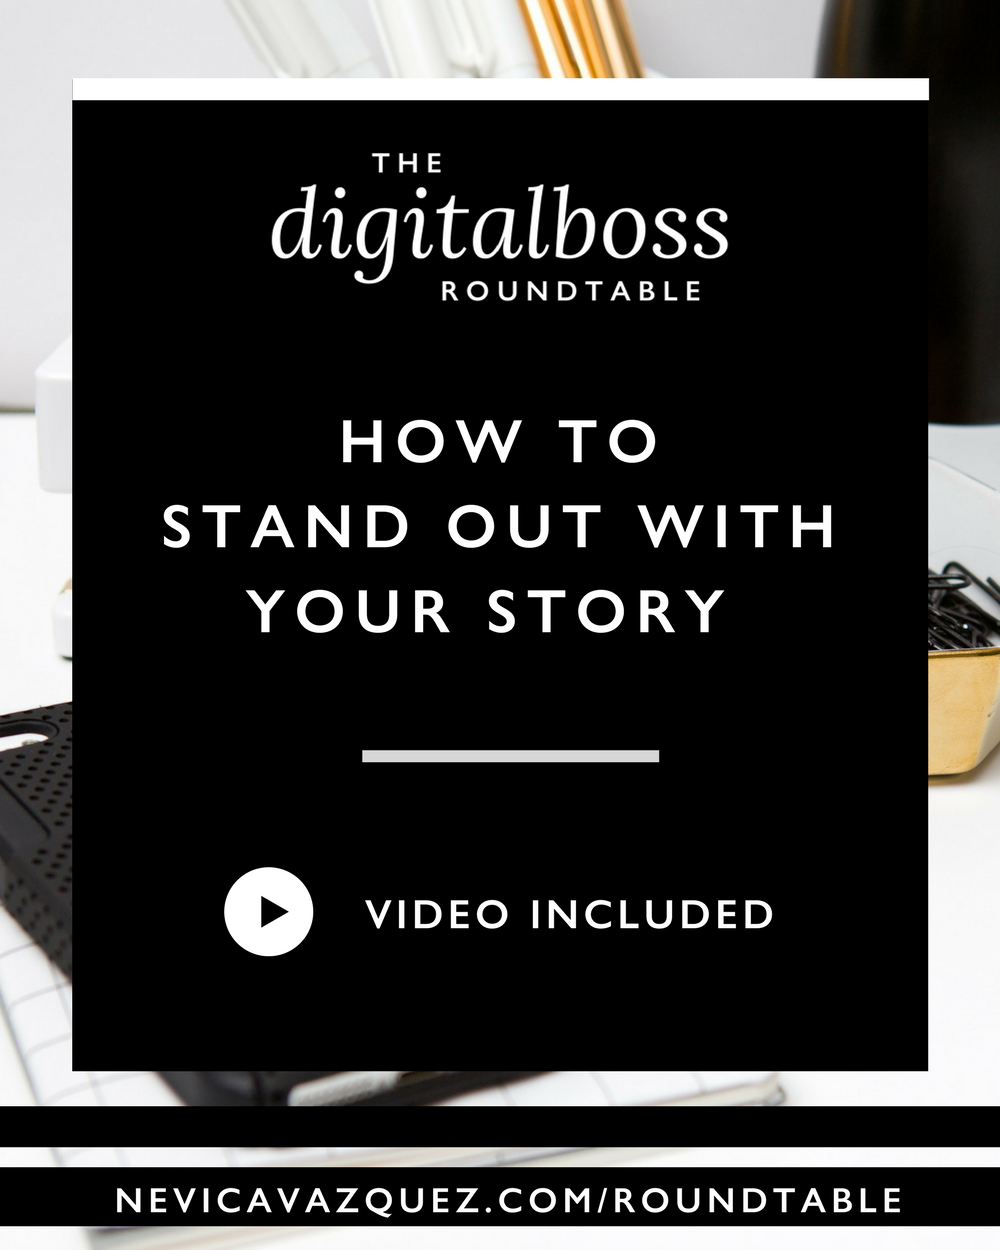 How To Stand Out With Your Story [Roundtable Series With Annie Franceschi, Bonnie Bakhtiari, and Mallika Malhotra]